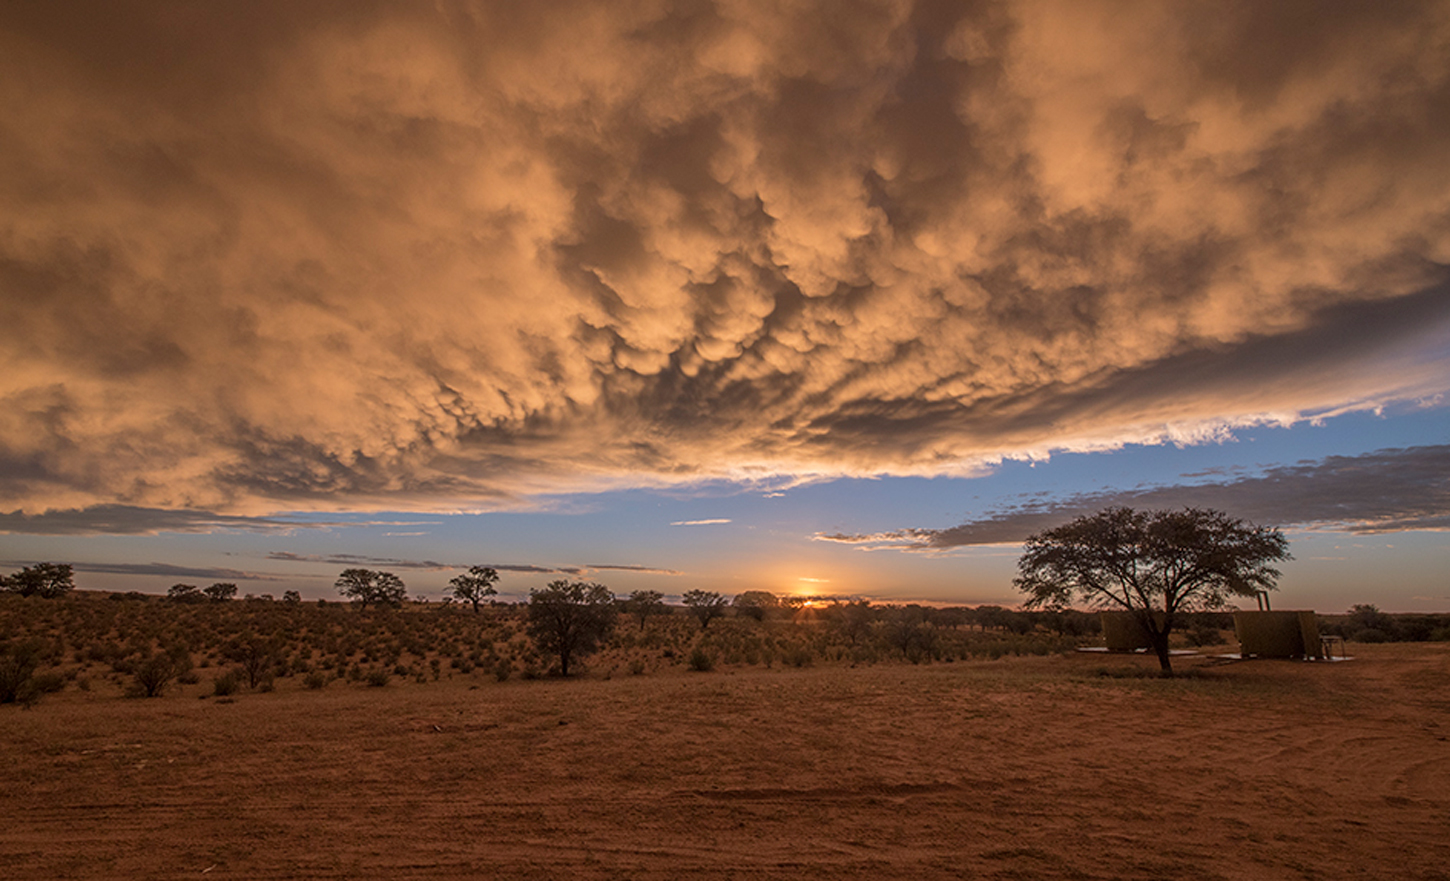 A dramatic landscape in Kgalagadi Transfrontier Park, South Africa ©Melanie Maske